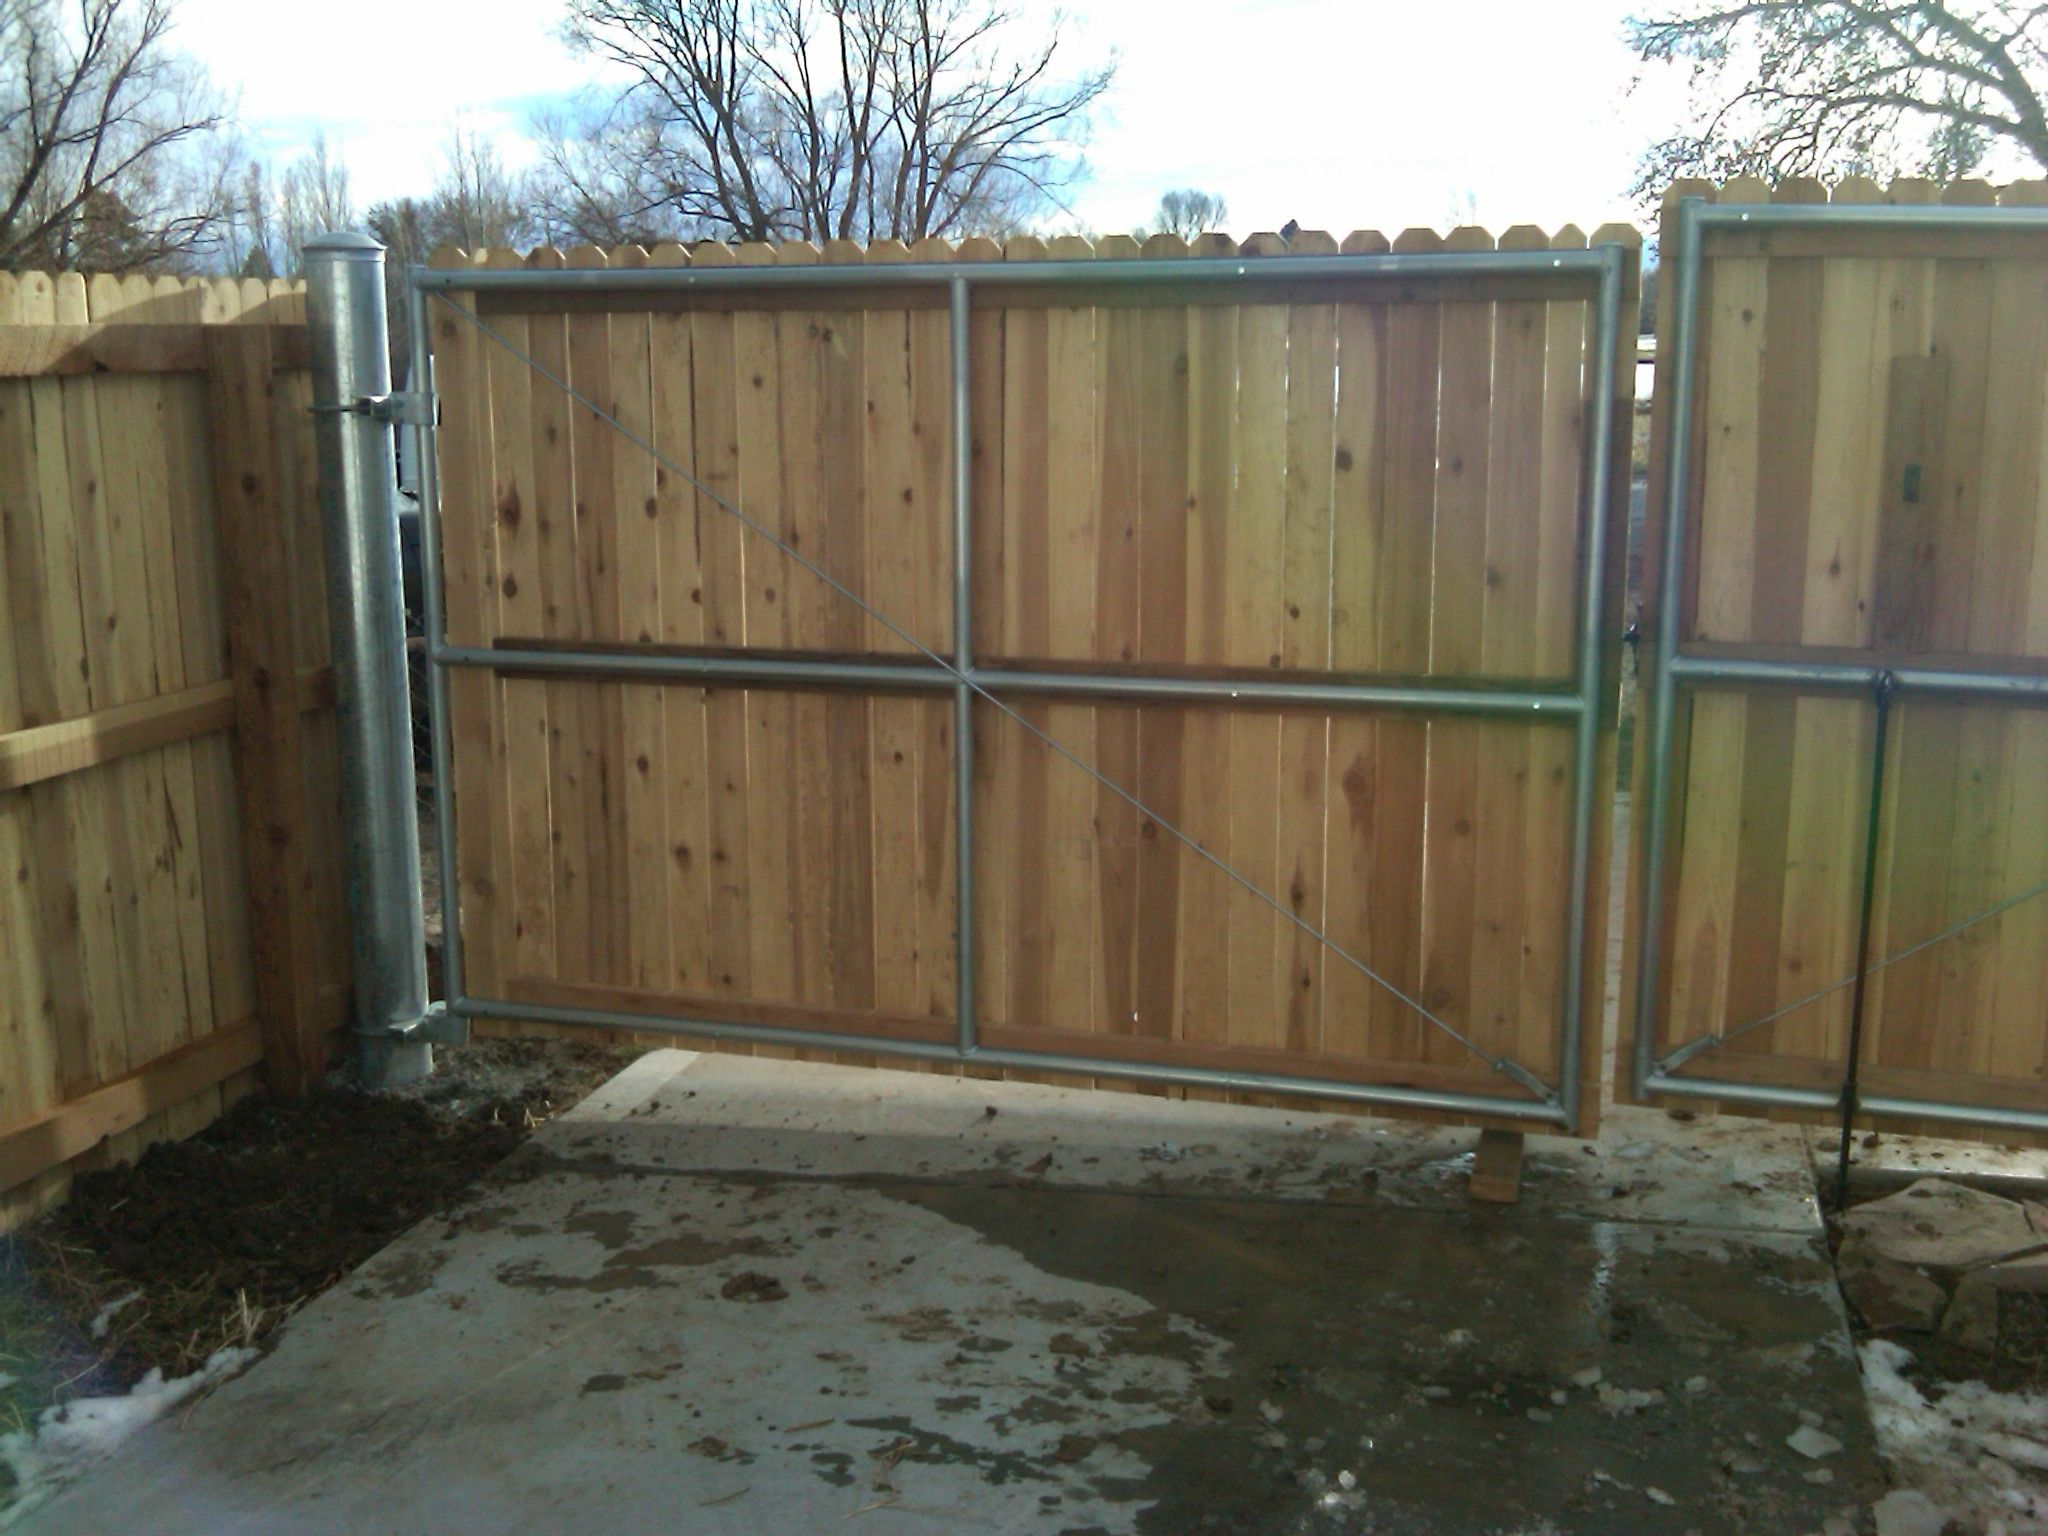 Image result for Metal Wooden Fences with Gates | Fence ideas ...